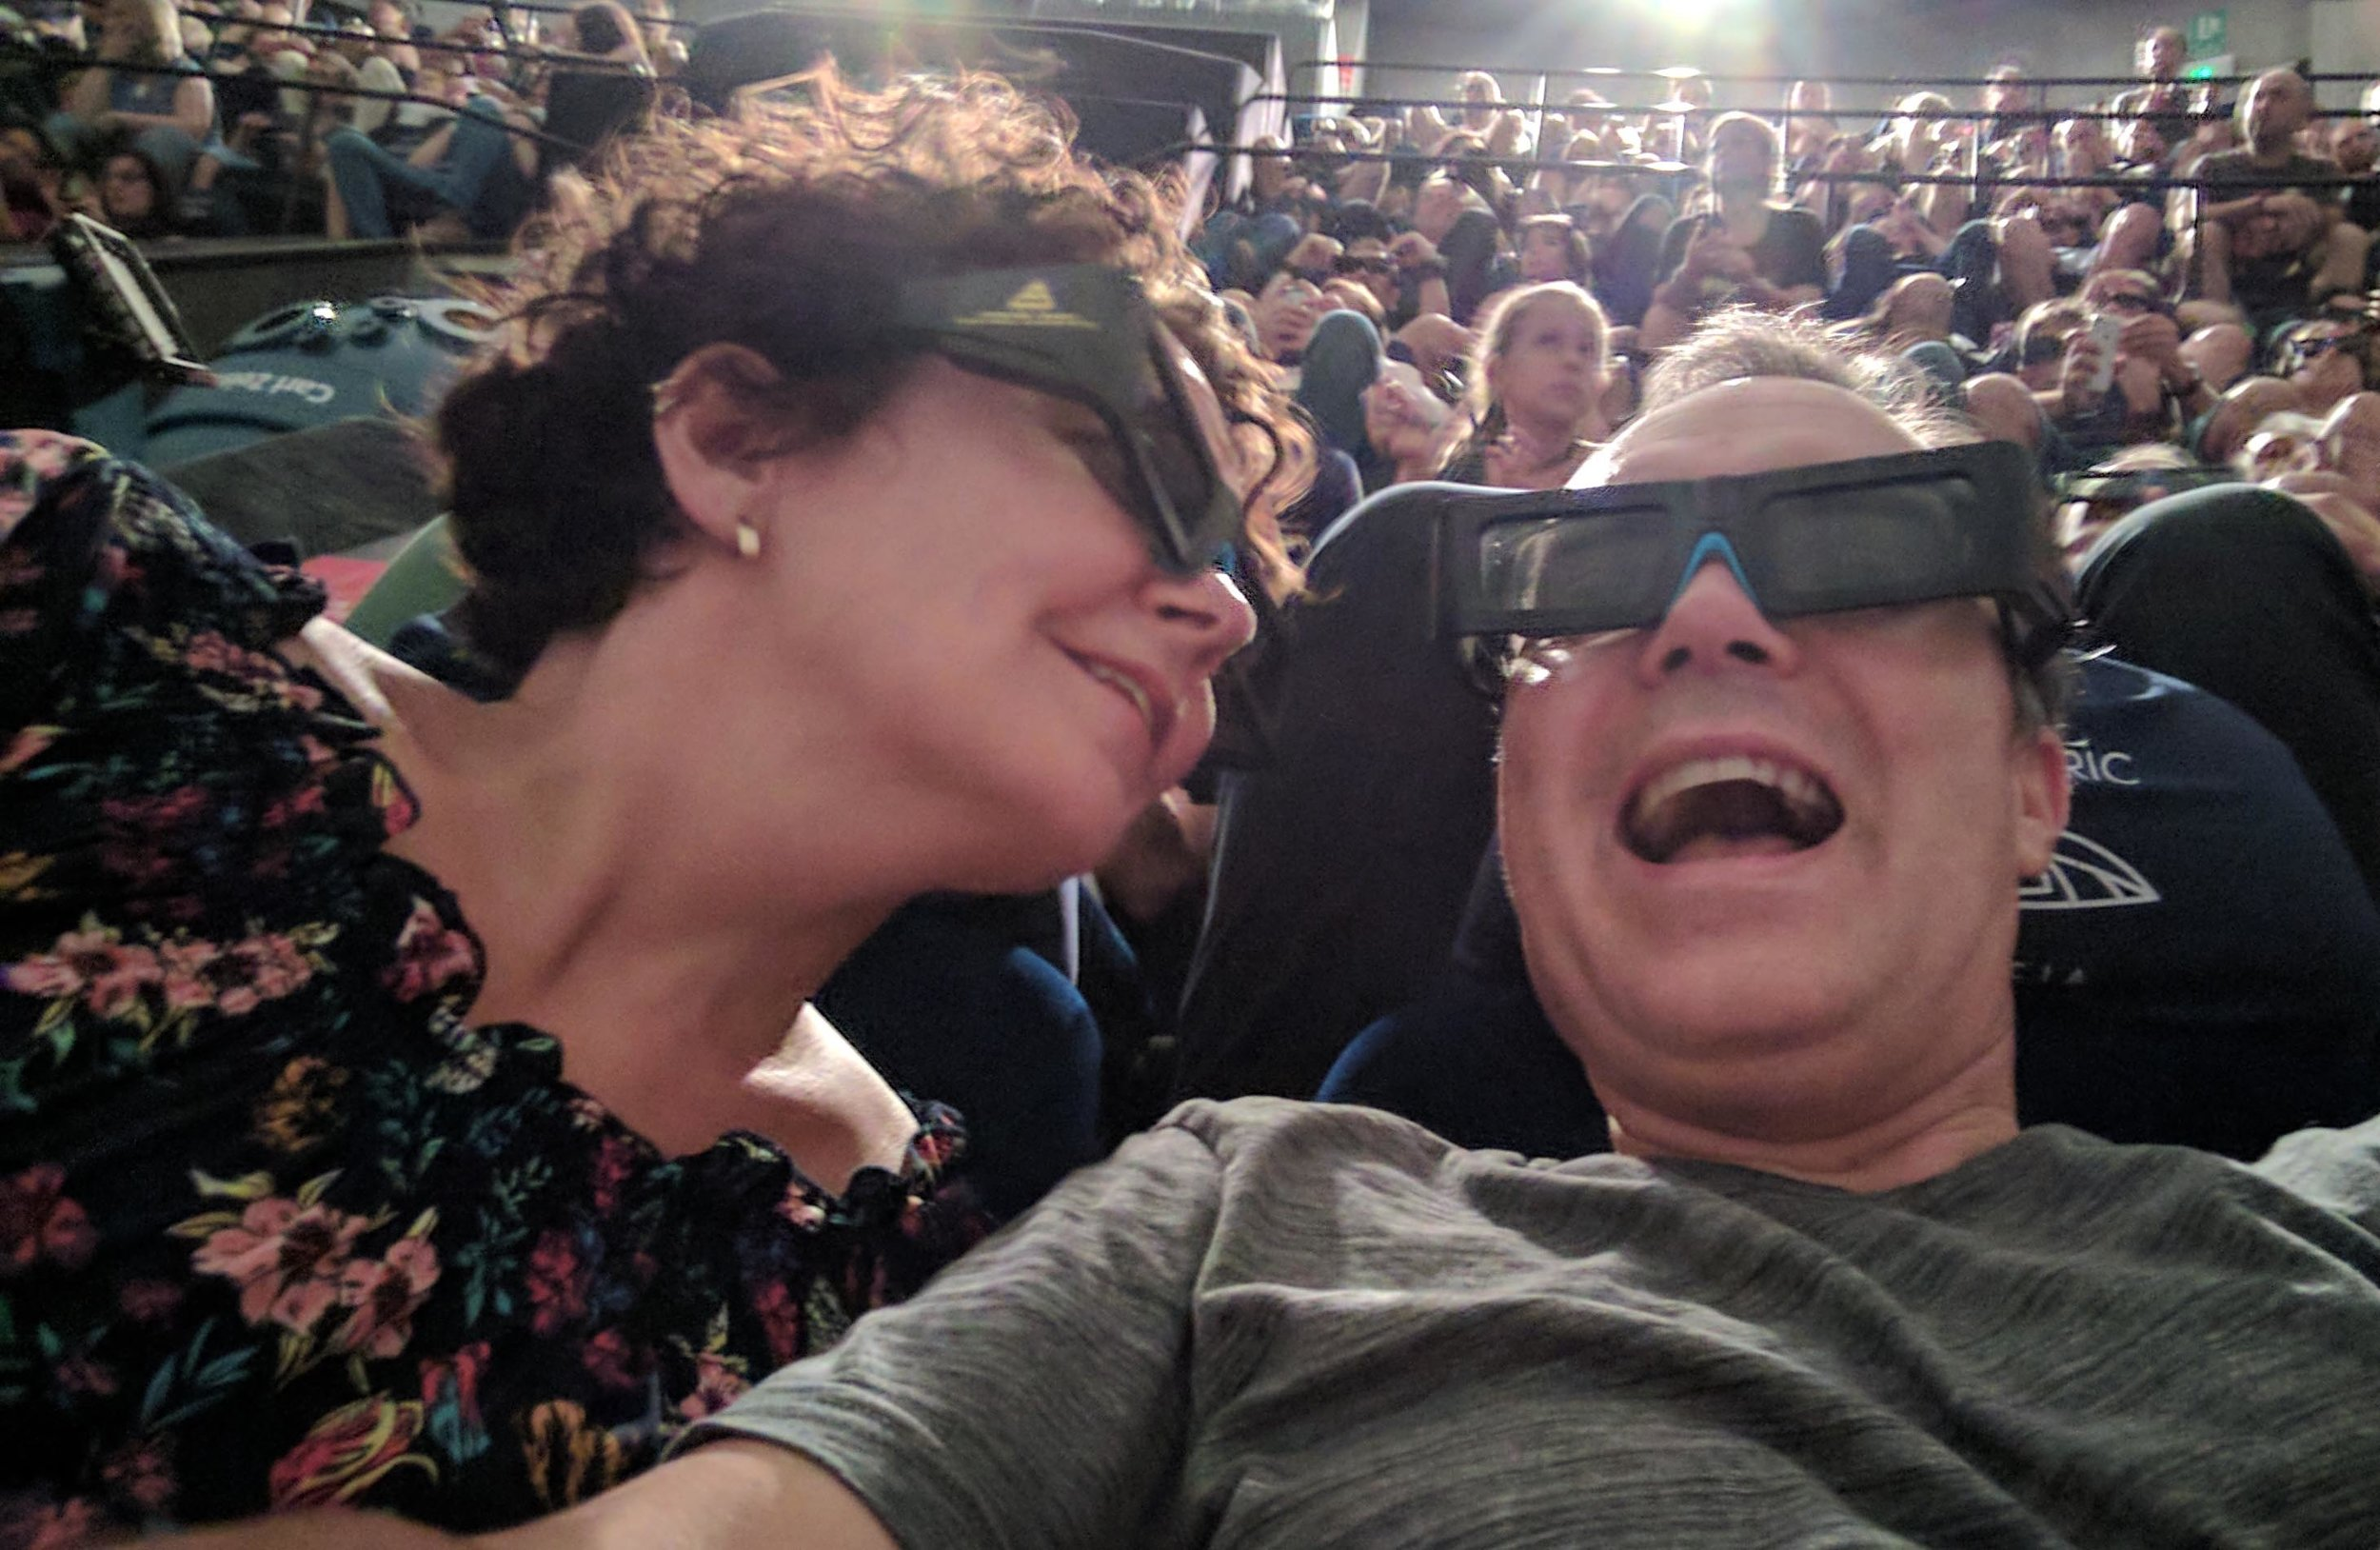 3D concerts and movies under the stars as part of the Gran Fira